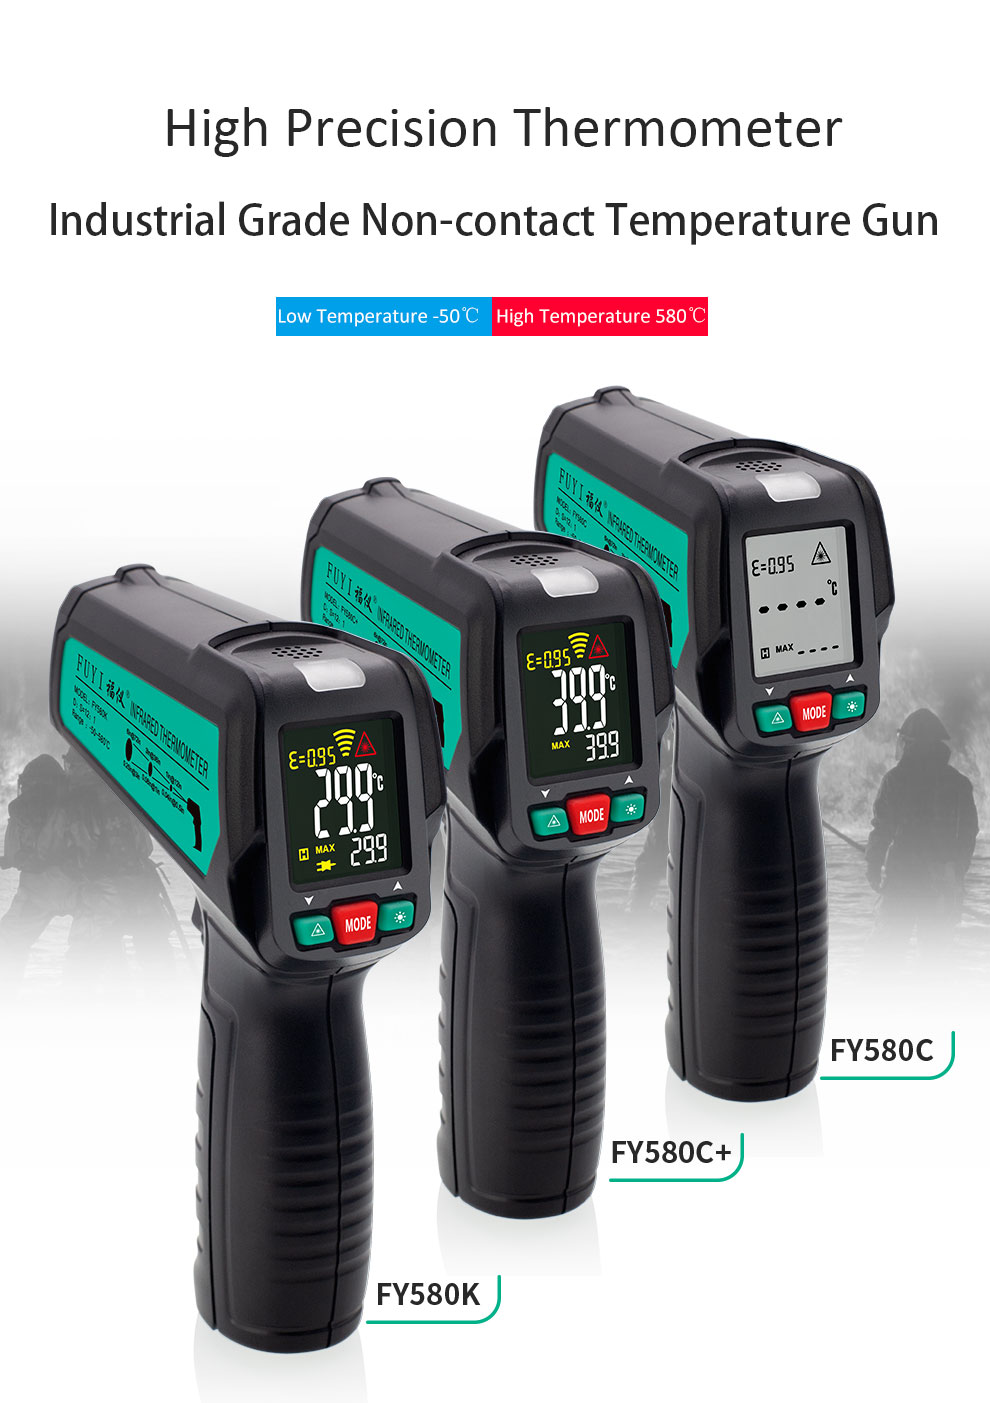 High Precision Non Contact Thermometer with K Probe and LCD Display to Check Body Temperature 7